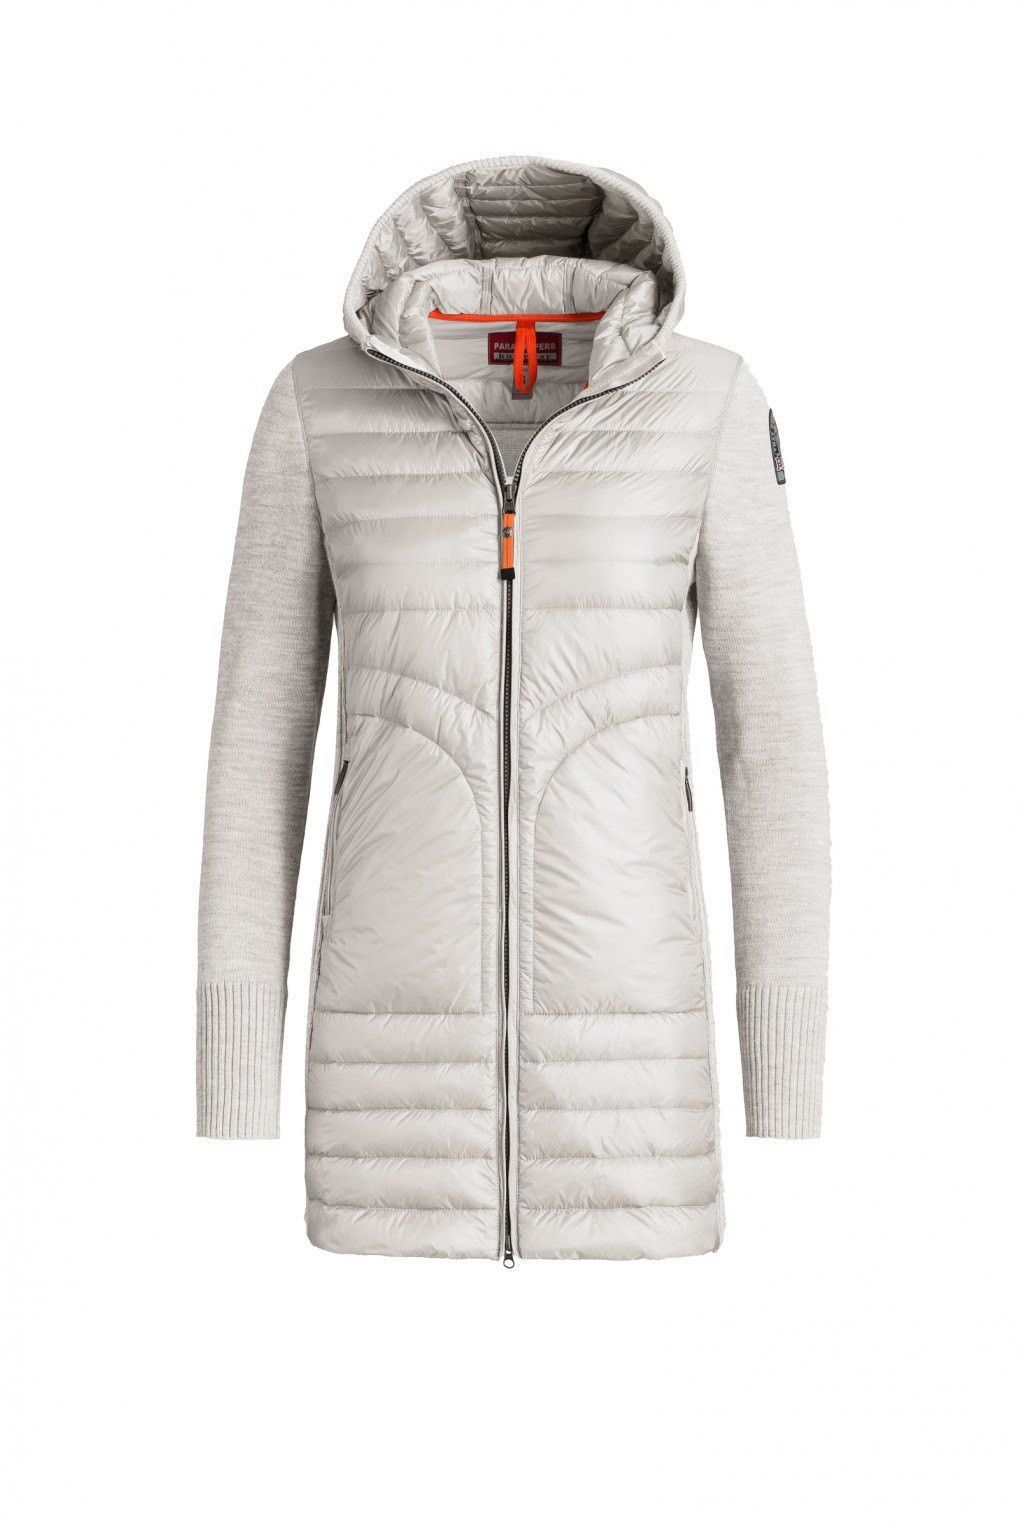 parajumpers KNITWEAR WHITE